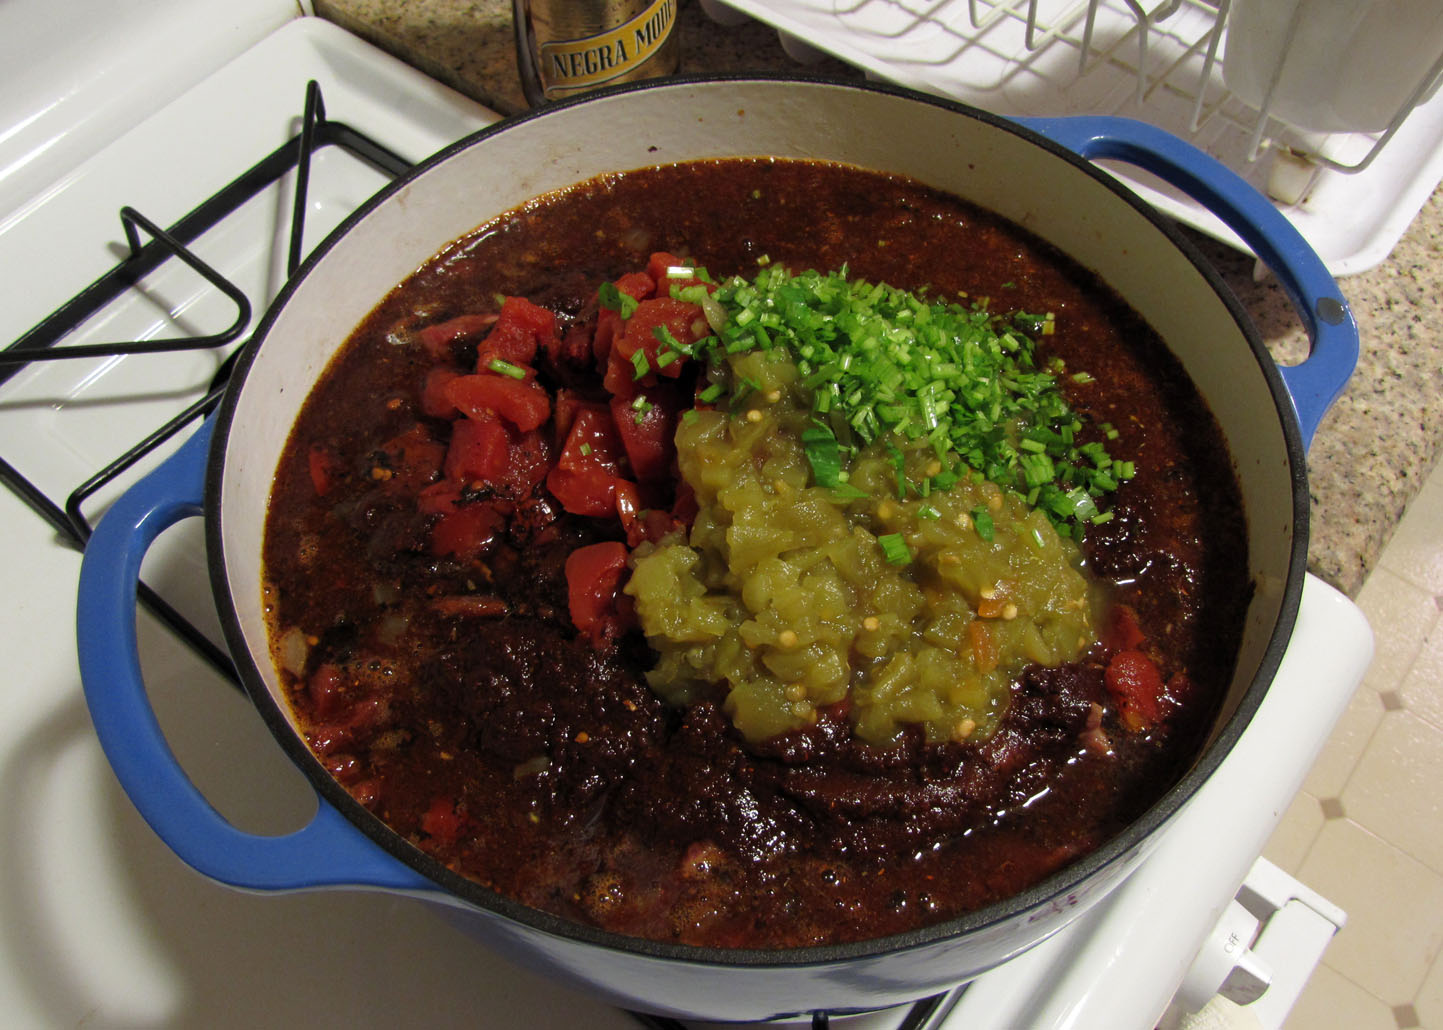 Smells Like Food in Here: Texas Beef Brisket Chili